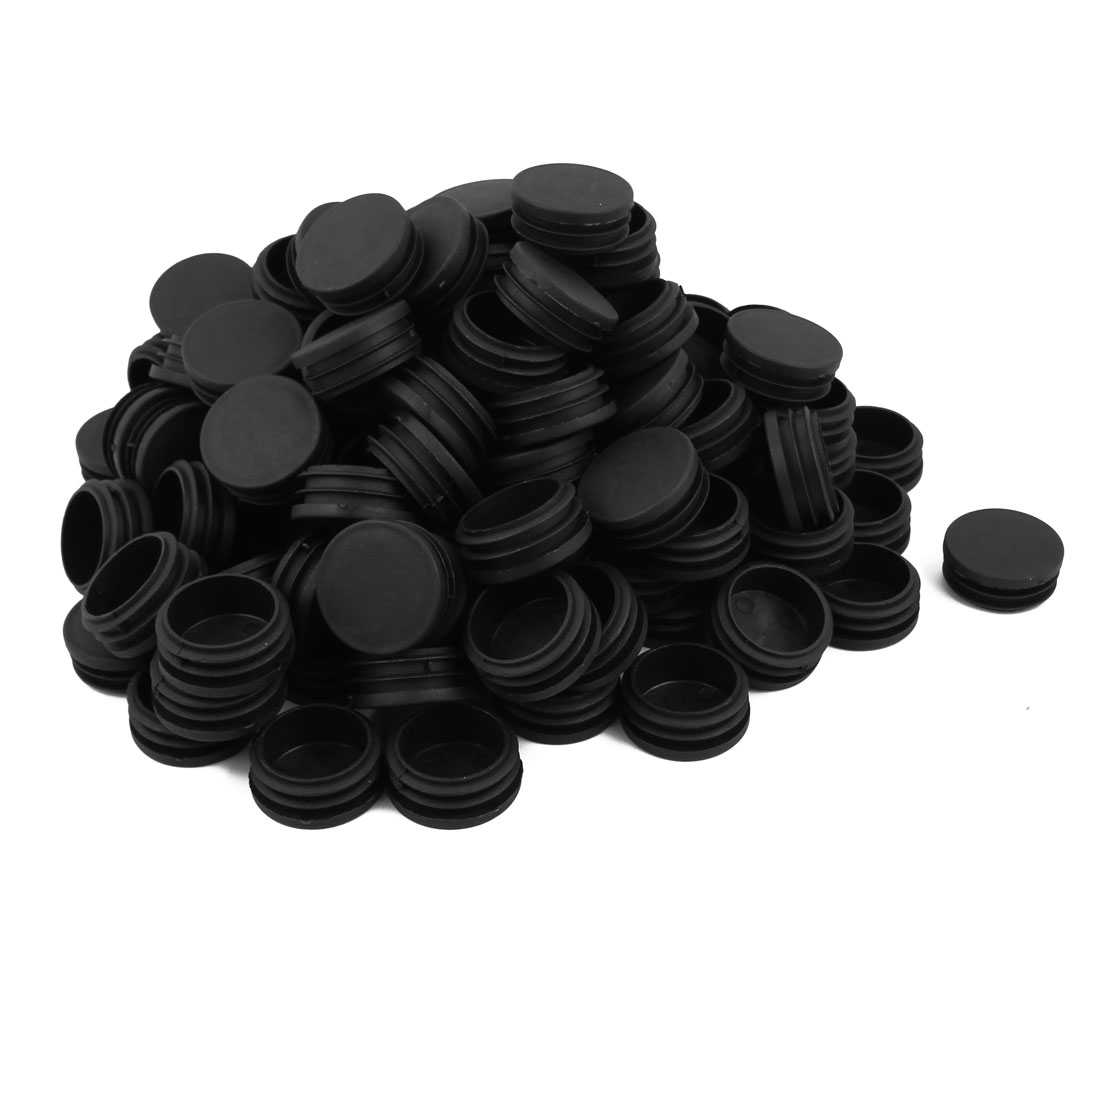 Plastic Furniture Table Chair Round Tube Insert Cover Black 41mm Dia 200 PCS